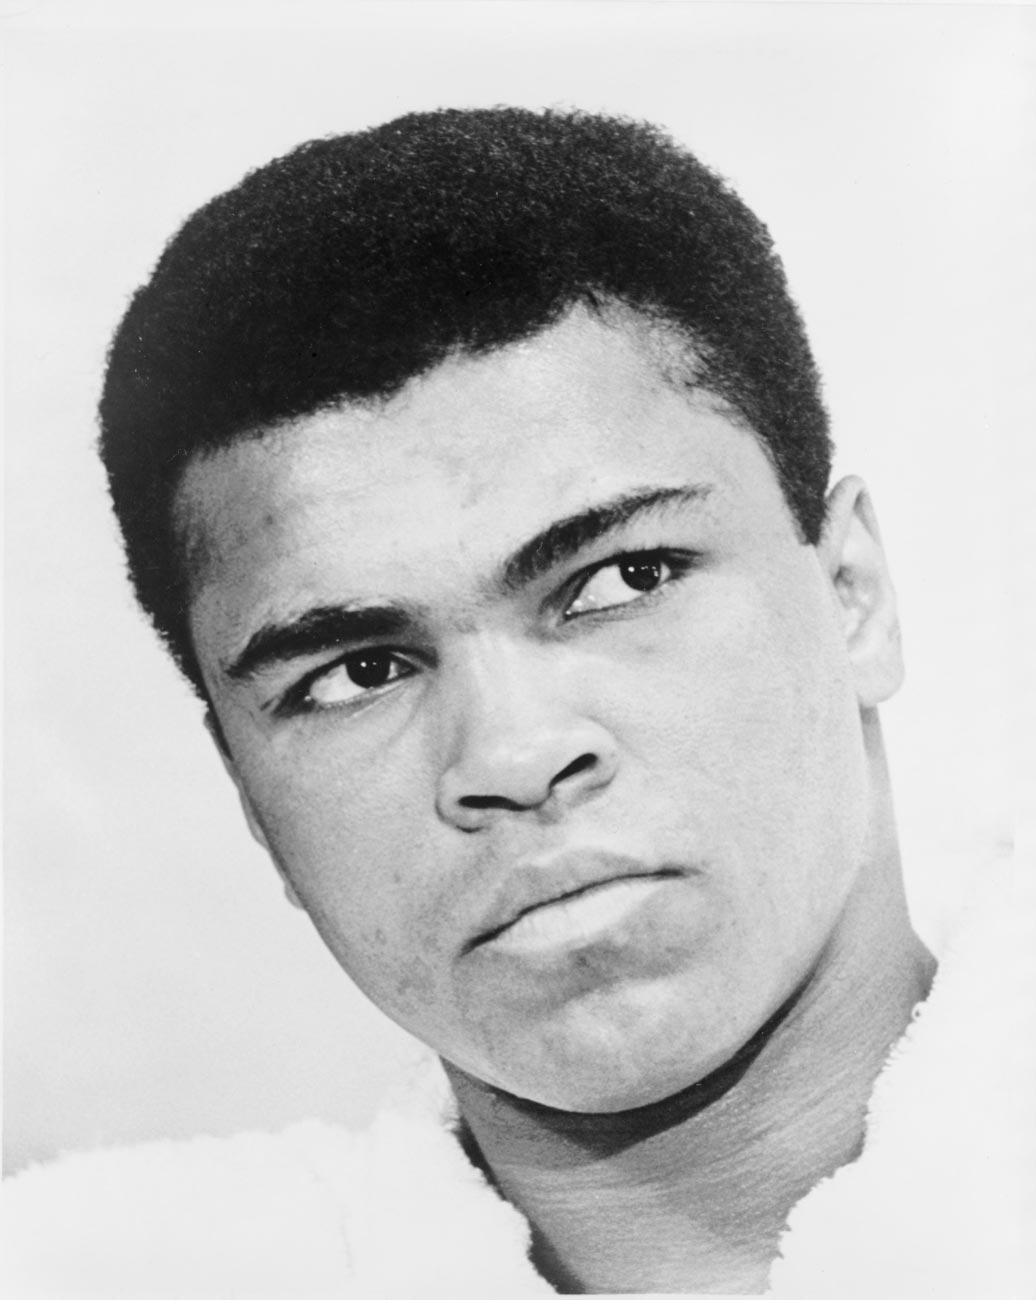 a biography of muhammad ali the greatest boxer of all time Muhammad ali (/ ɑː ˈ l iː / born cassius marcellus clay, jr january 17, 1942 – june 3, 2016) was an american professional boxer, activist, and philanthropist he is widely regarded as one of the most significant and celebrated sports figures of the 20th century.